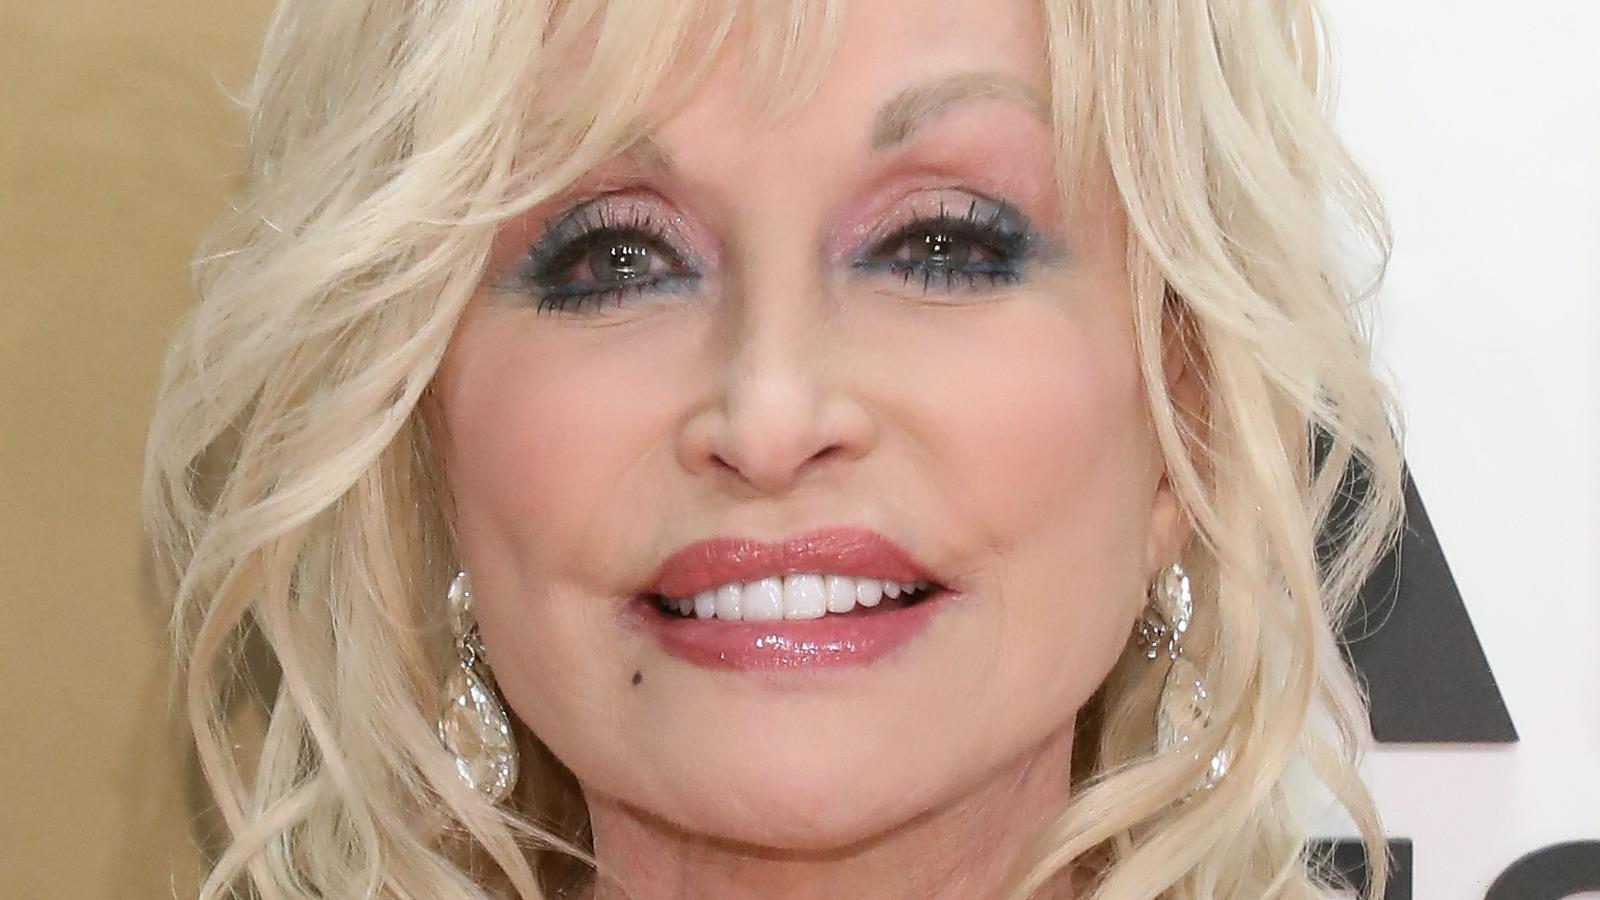 Dolly Parton Has Insurance On This Part Of Her Body